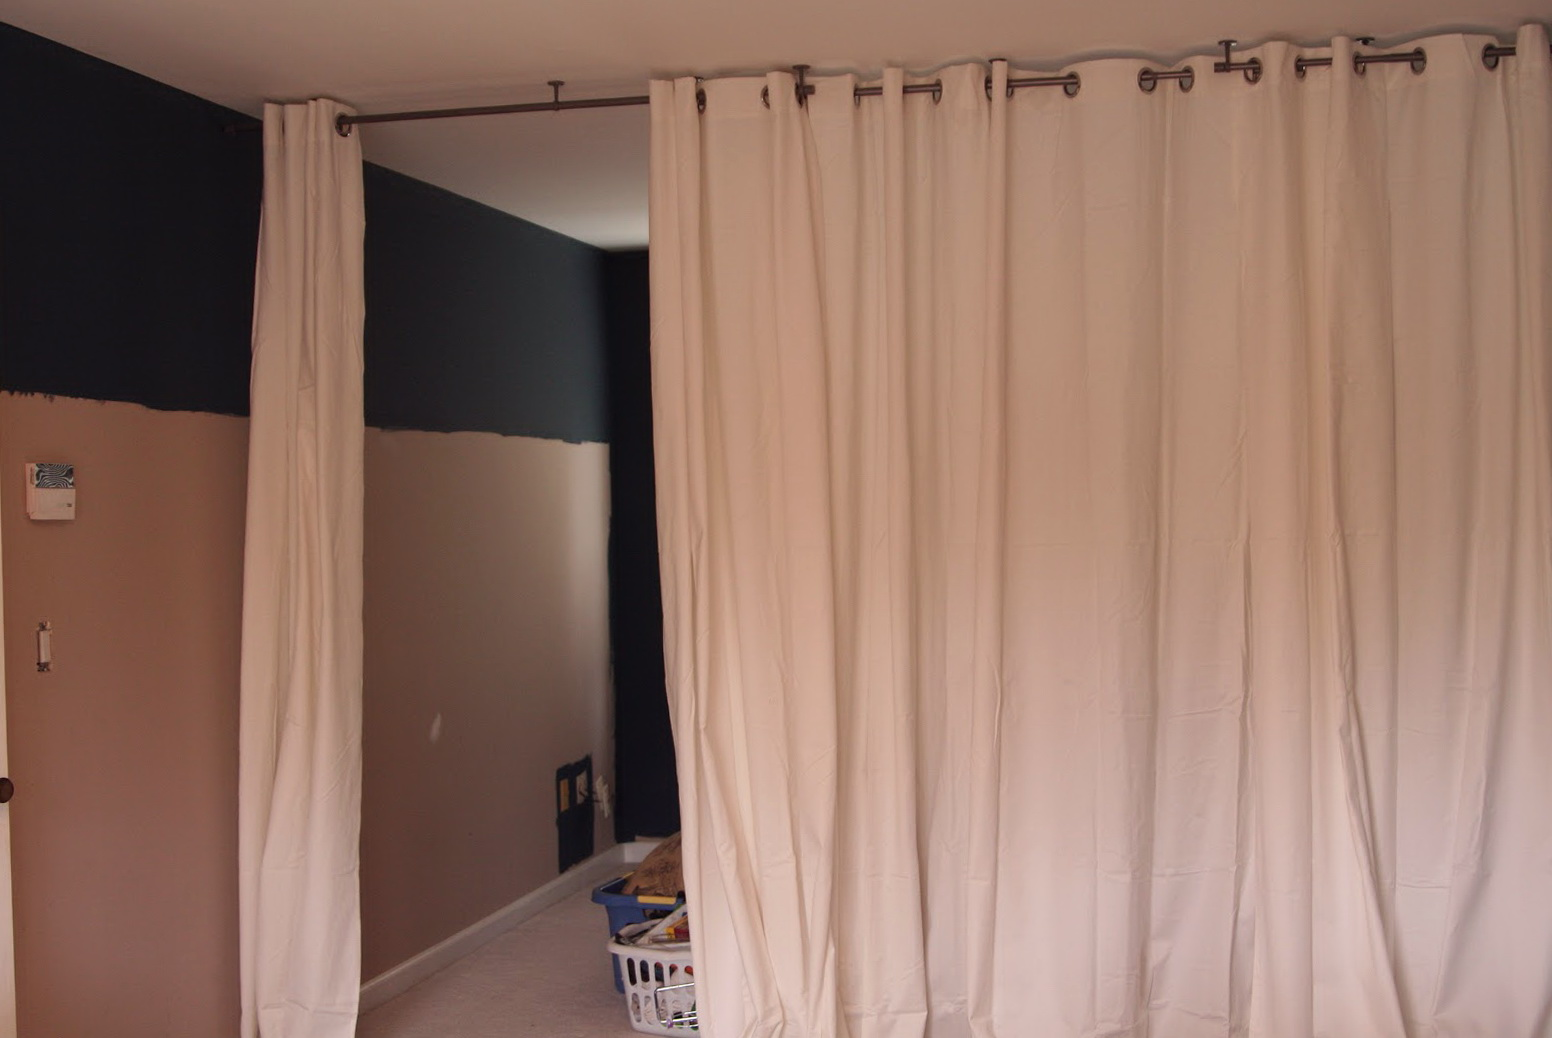 Room divider curtain track diy home design ideas - Room divider curtain ideas ...